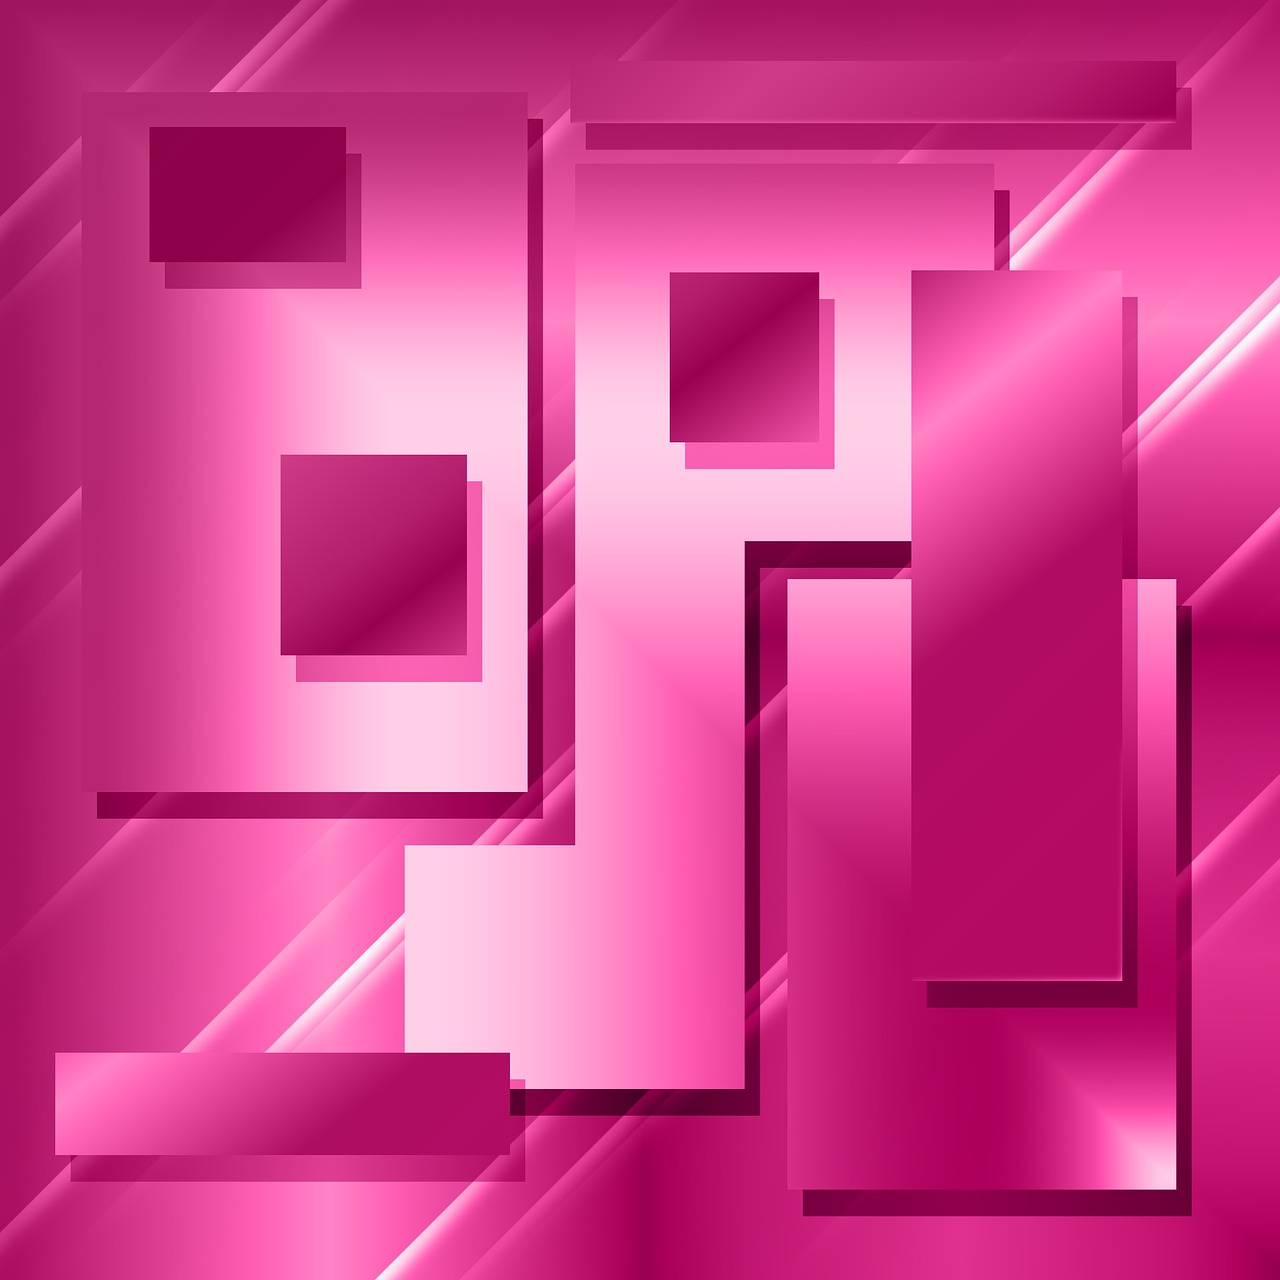 figures rectangles squares free photo